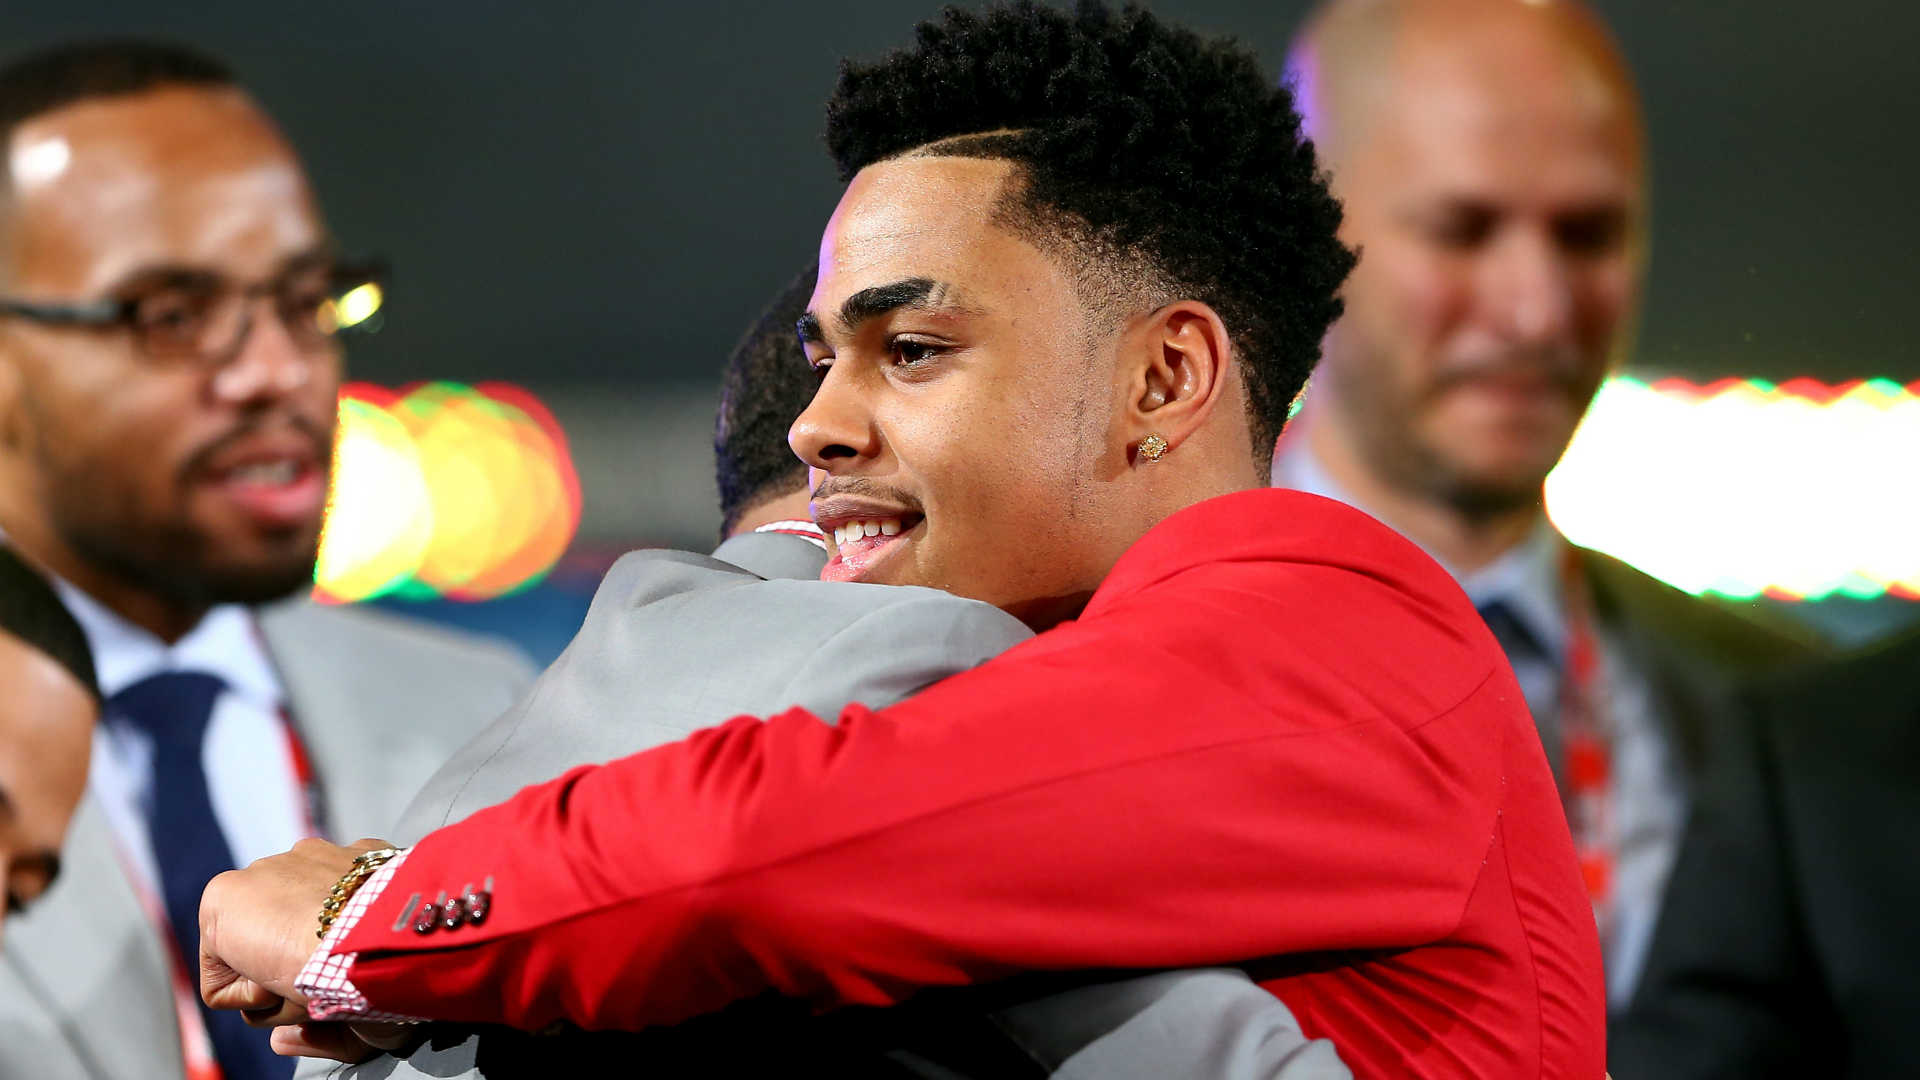 D'Angelo Russell's father arrested on drug possession charges, report says